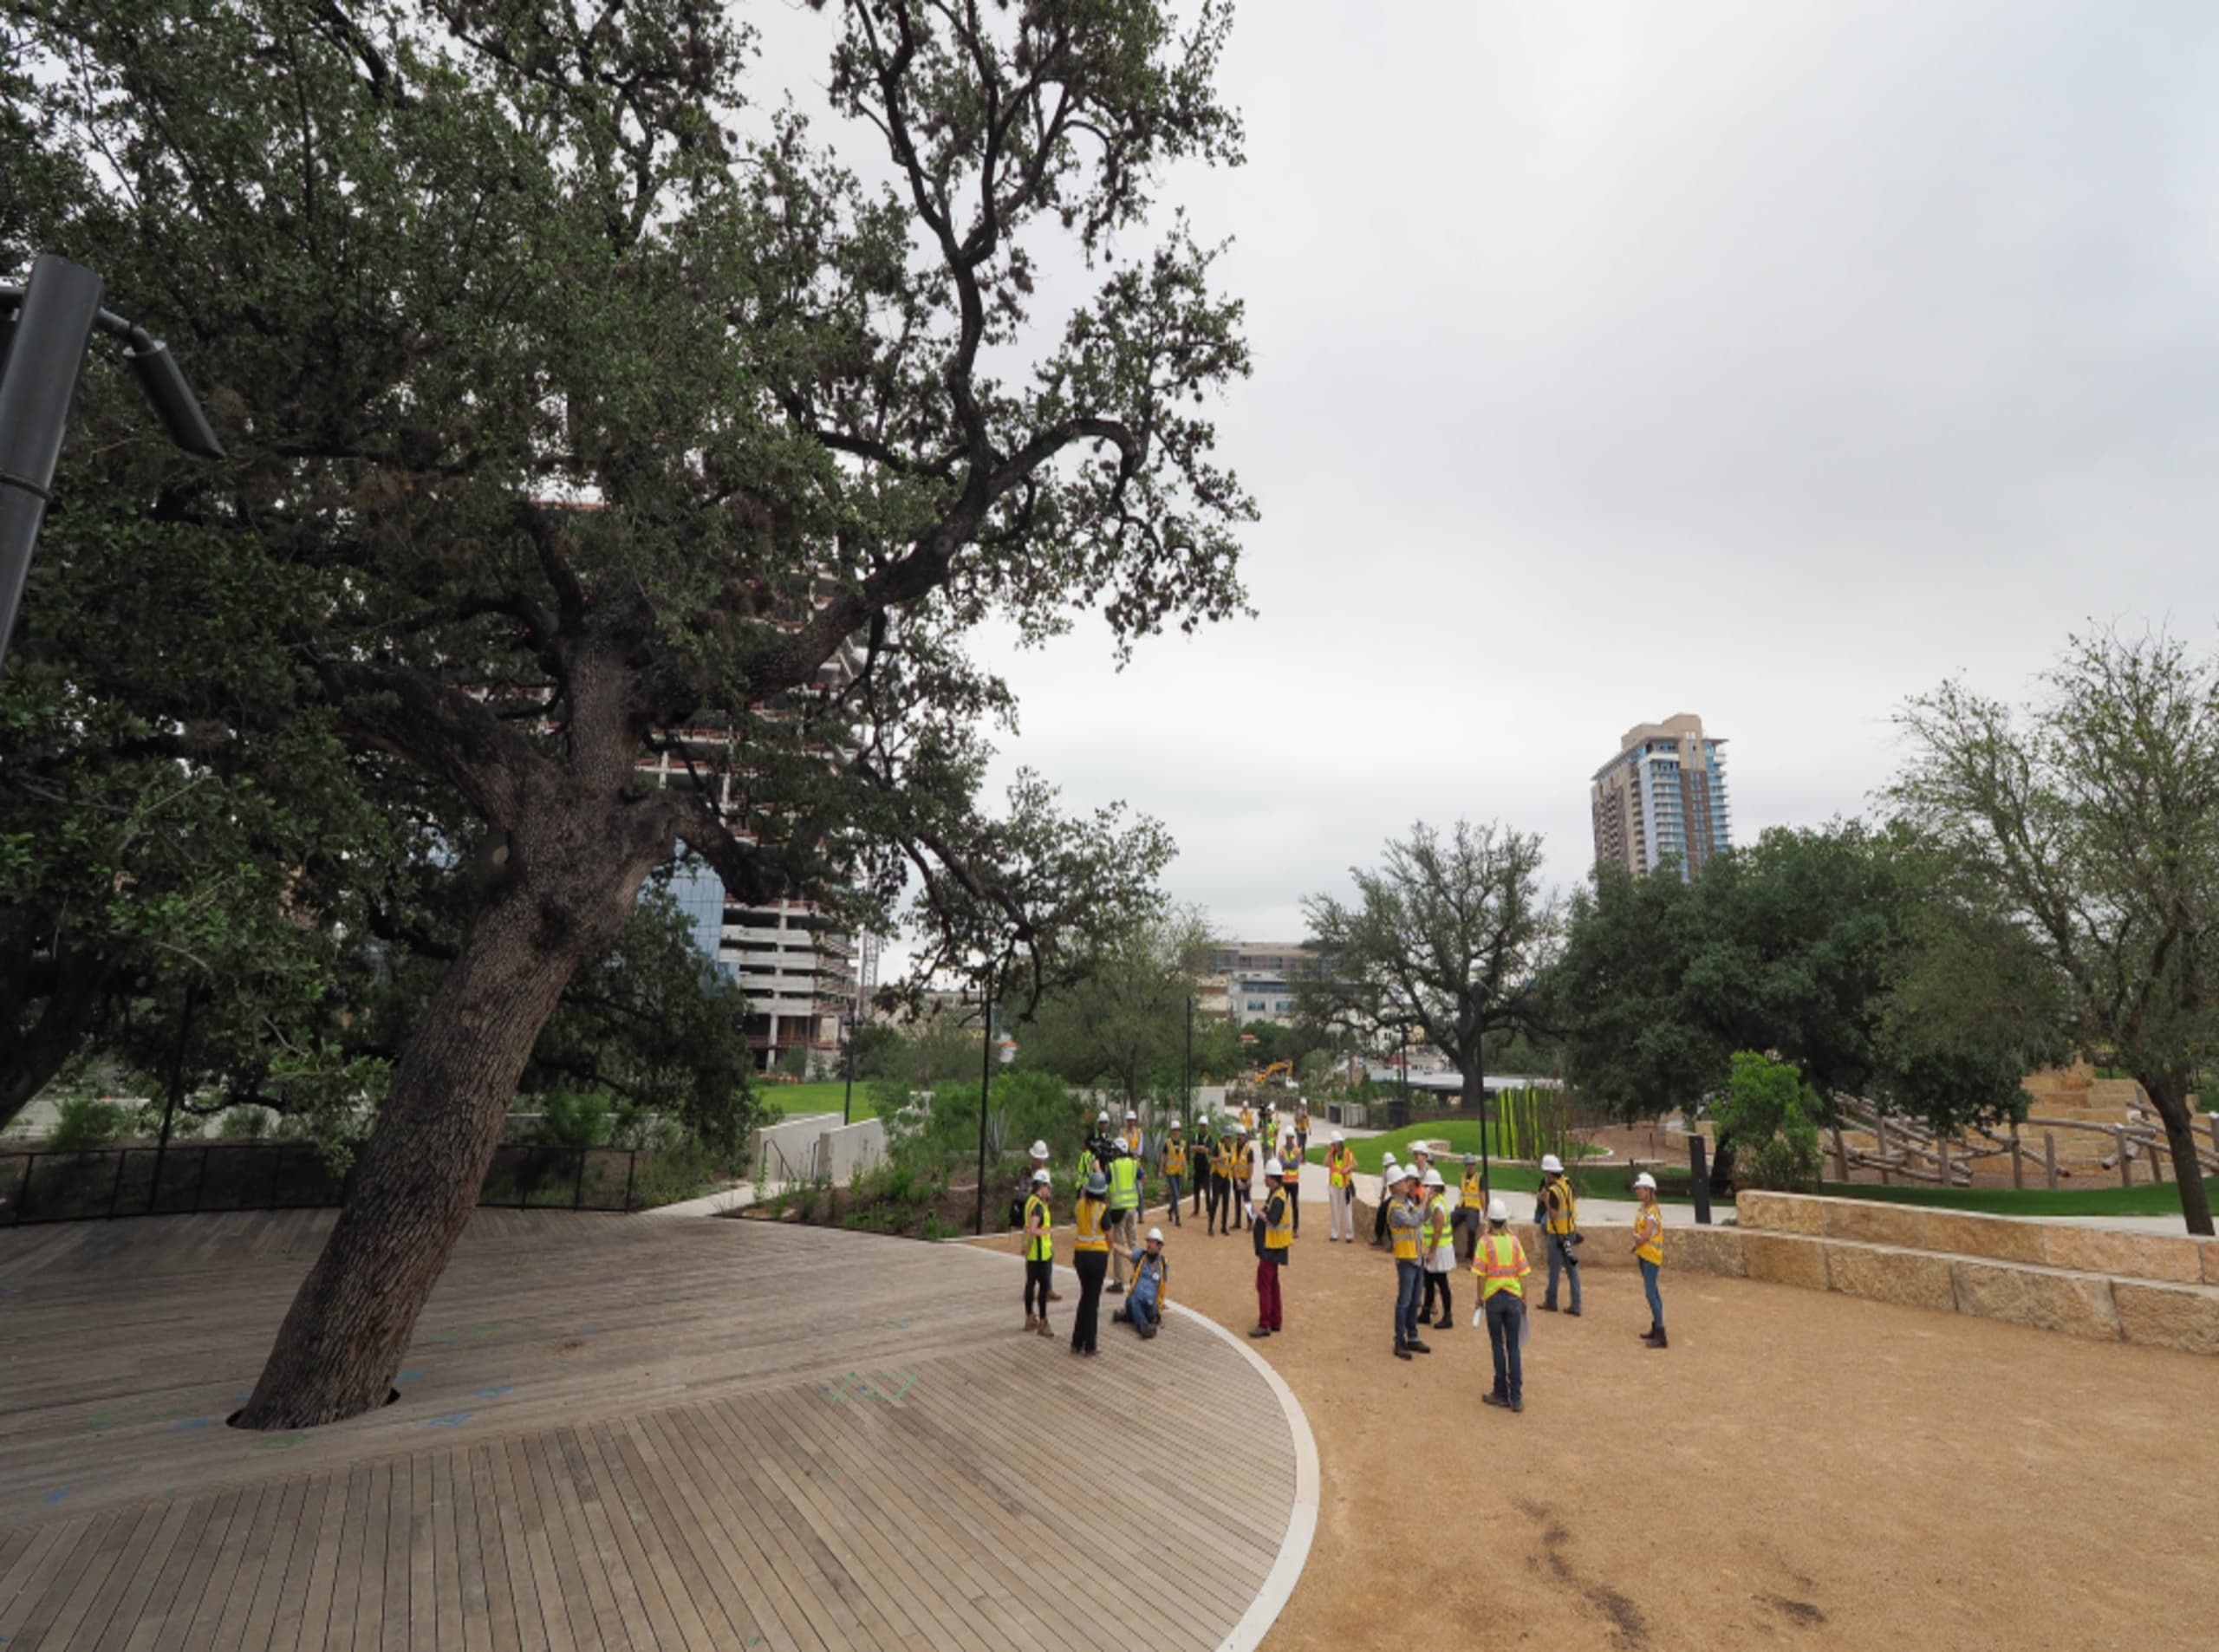 Austin's newest urban green space, Waterloo Park, set to open Aug. 14